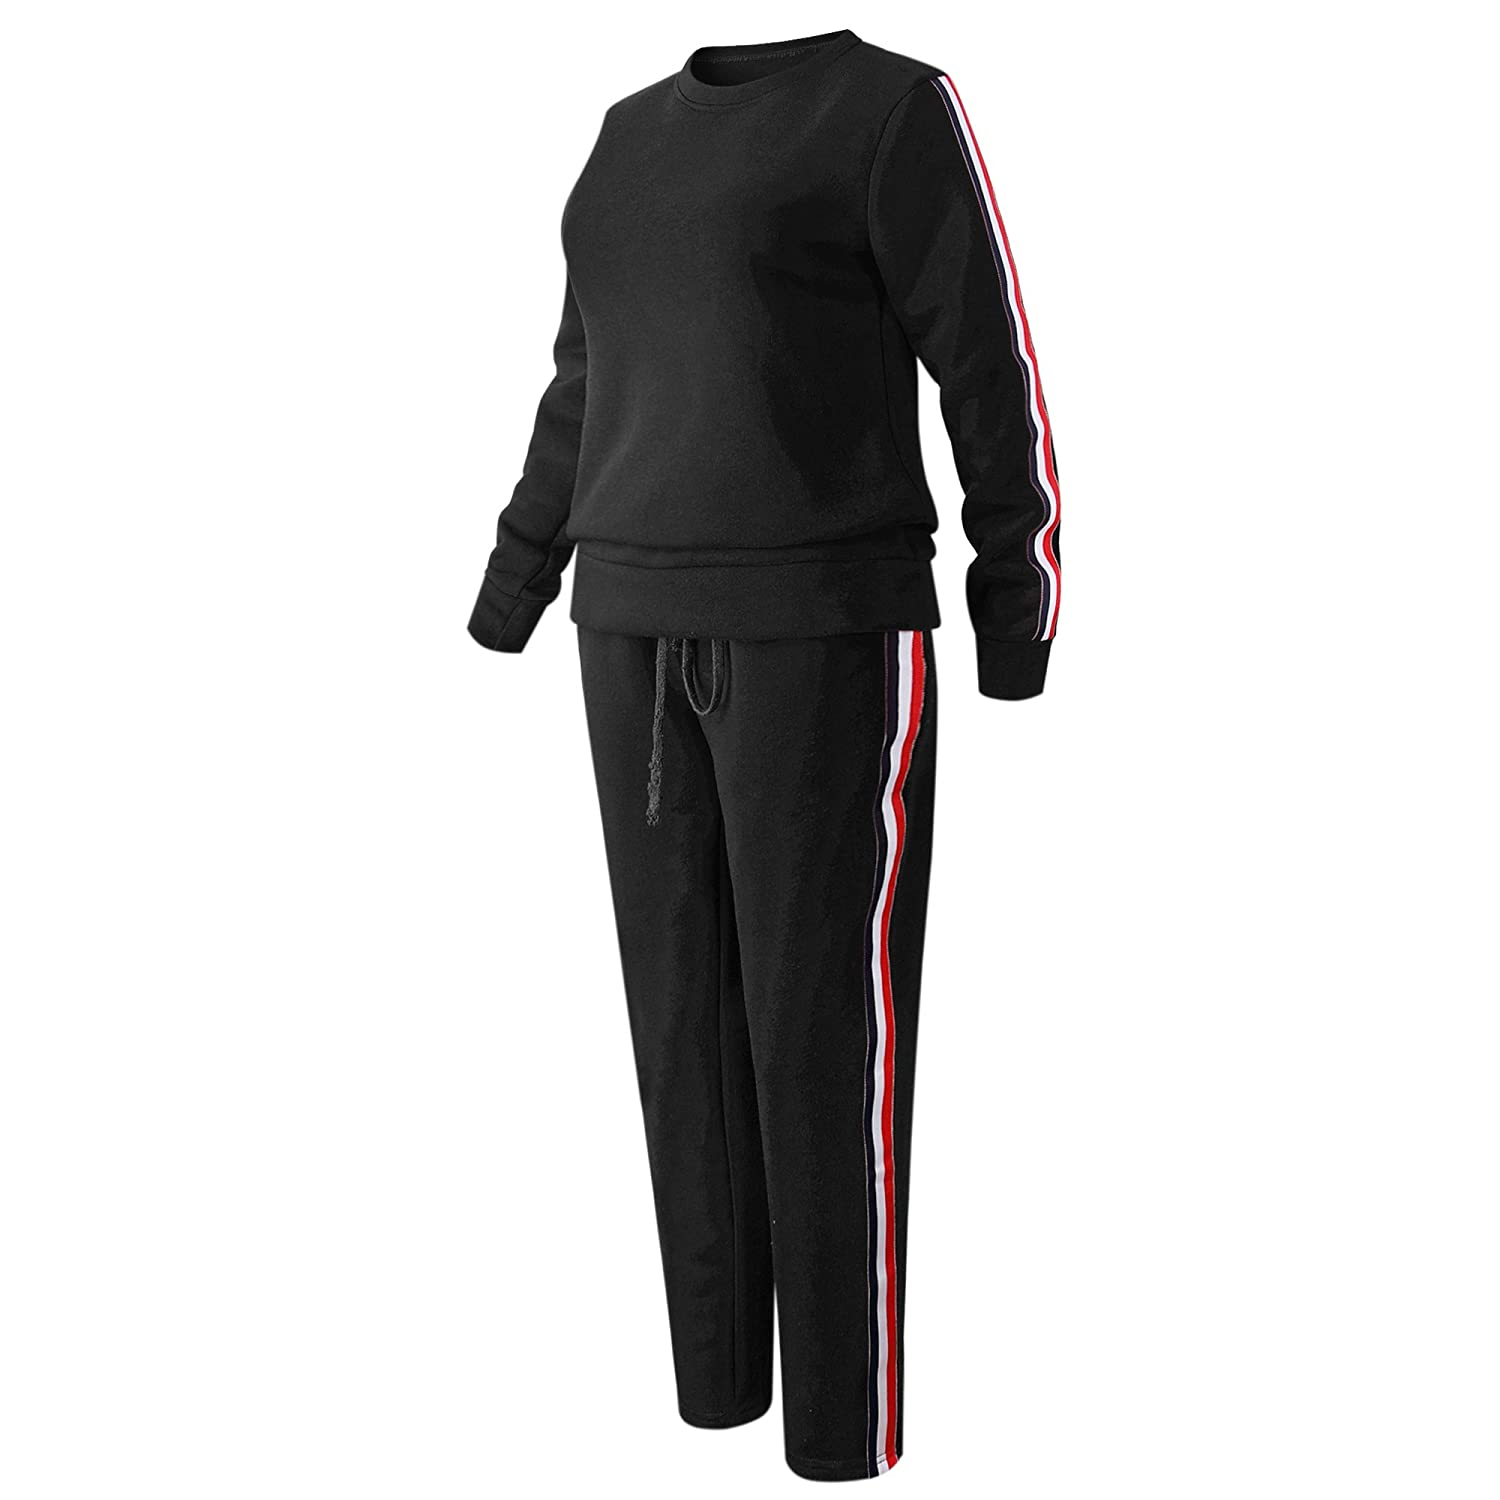 0a6acc574c1 This sport tracksuit set is crafted from premium cotton poly fleece to  ensure easy-care comfort